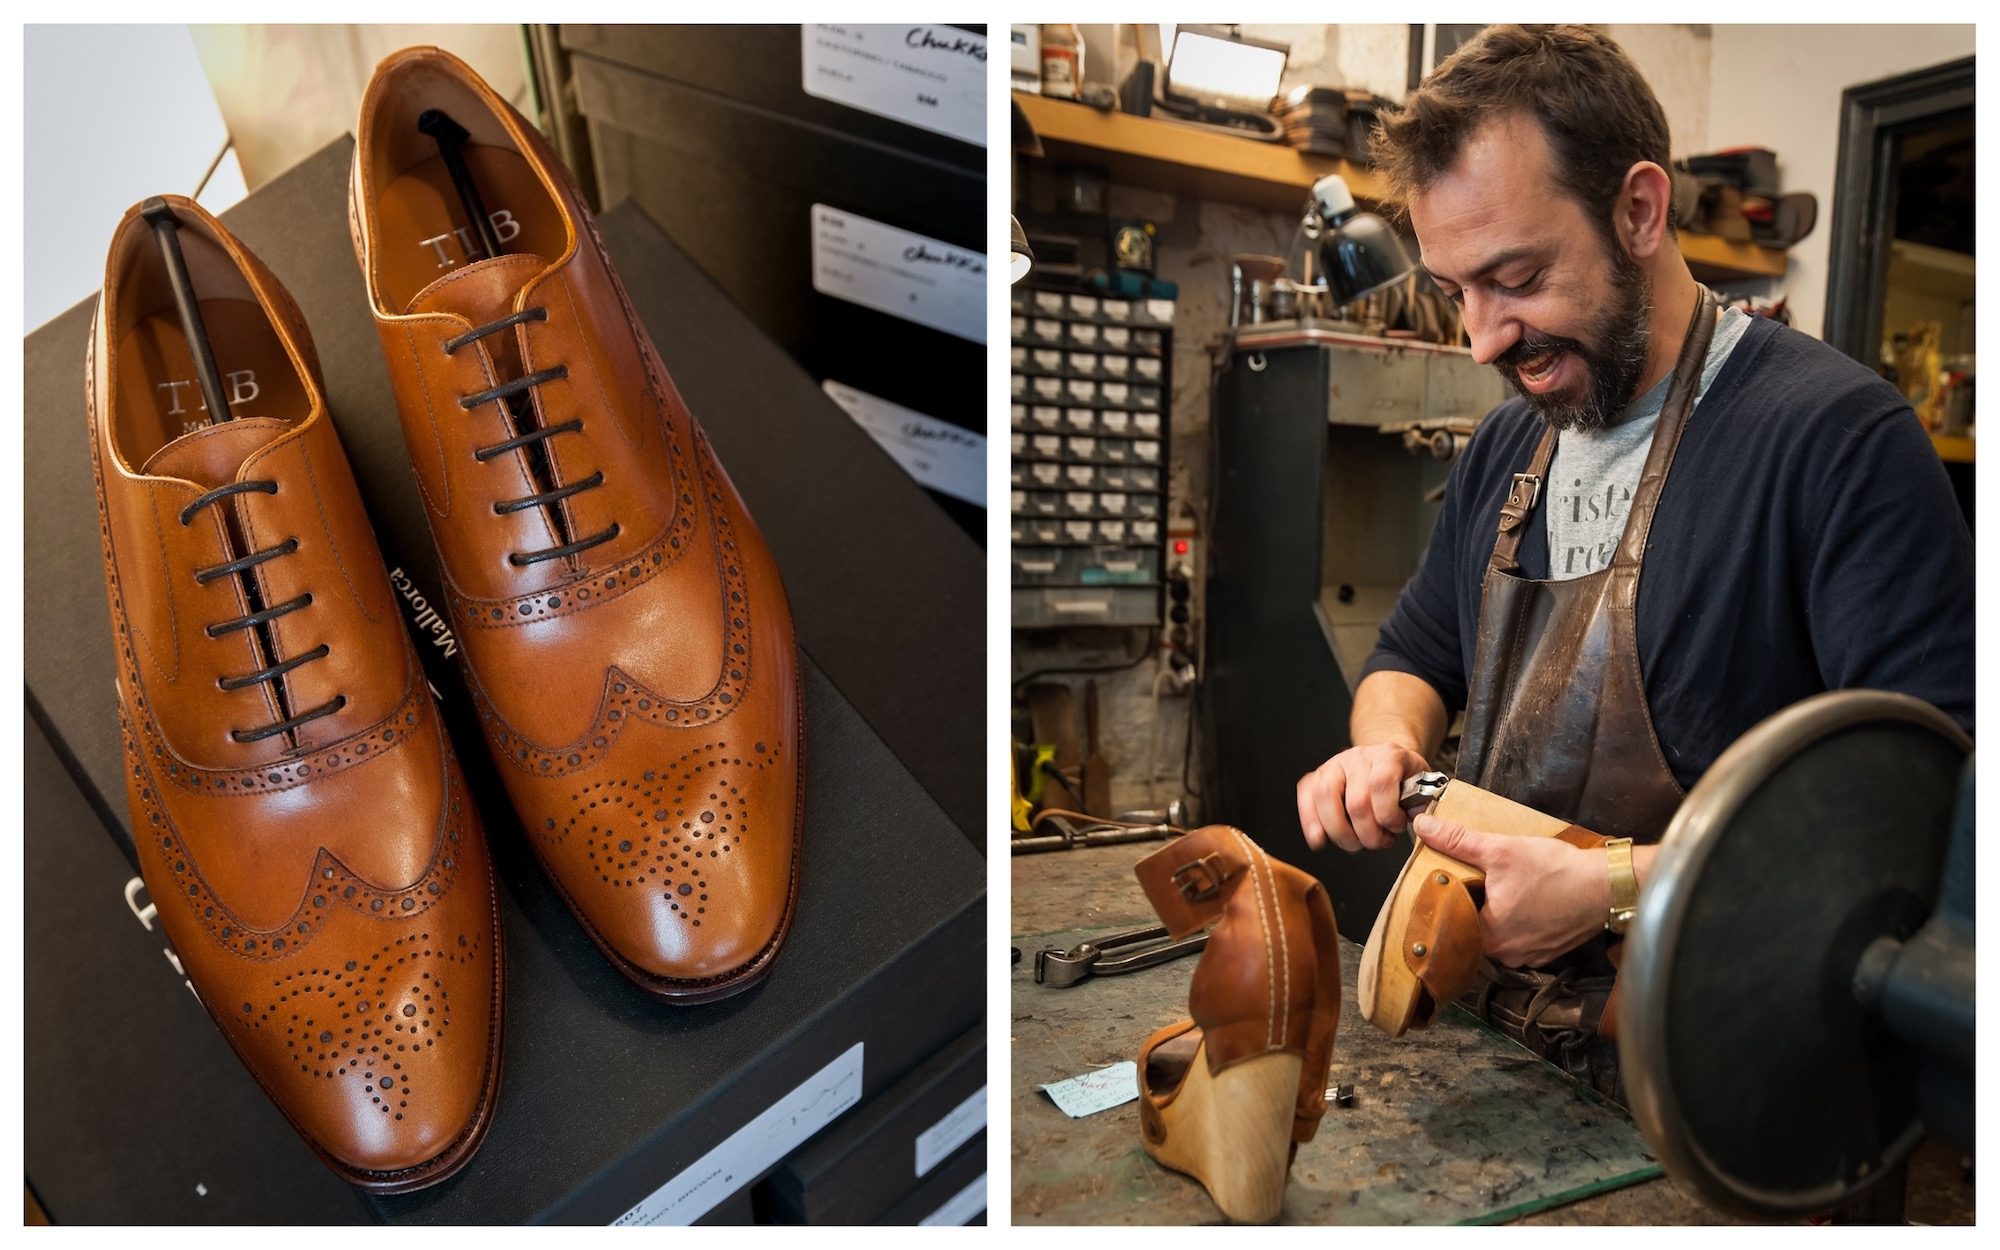 HiP Paris Blog checks out artisanal cobbler Atelier Constance in Montmartre and one of his shiny new pairs of Oxford men's shoes (left). Cobbler Jérôme Voisin working on a pair of women's espadrilles in his workshop (right).